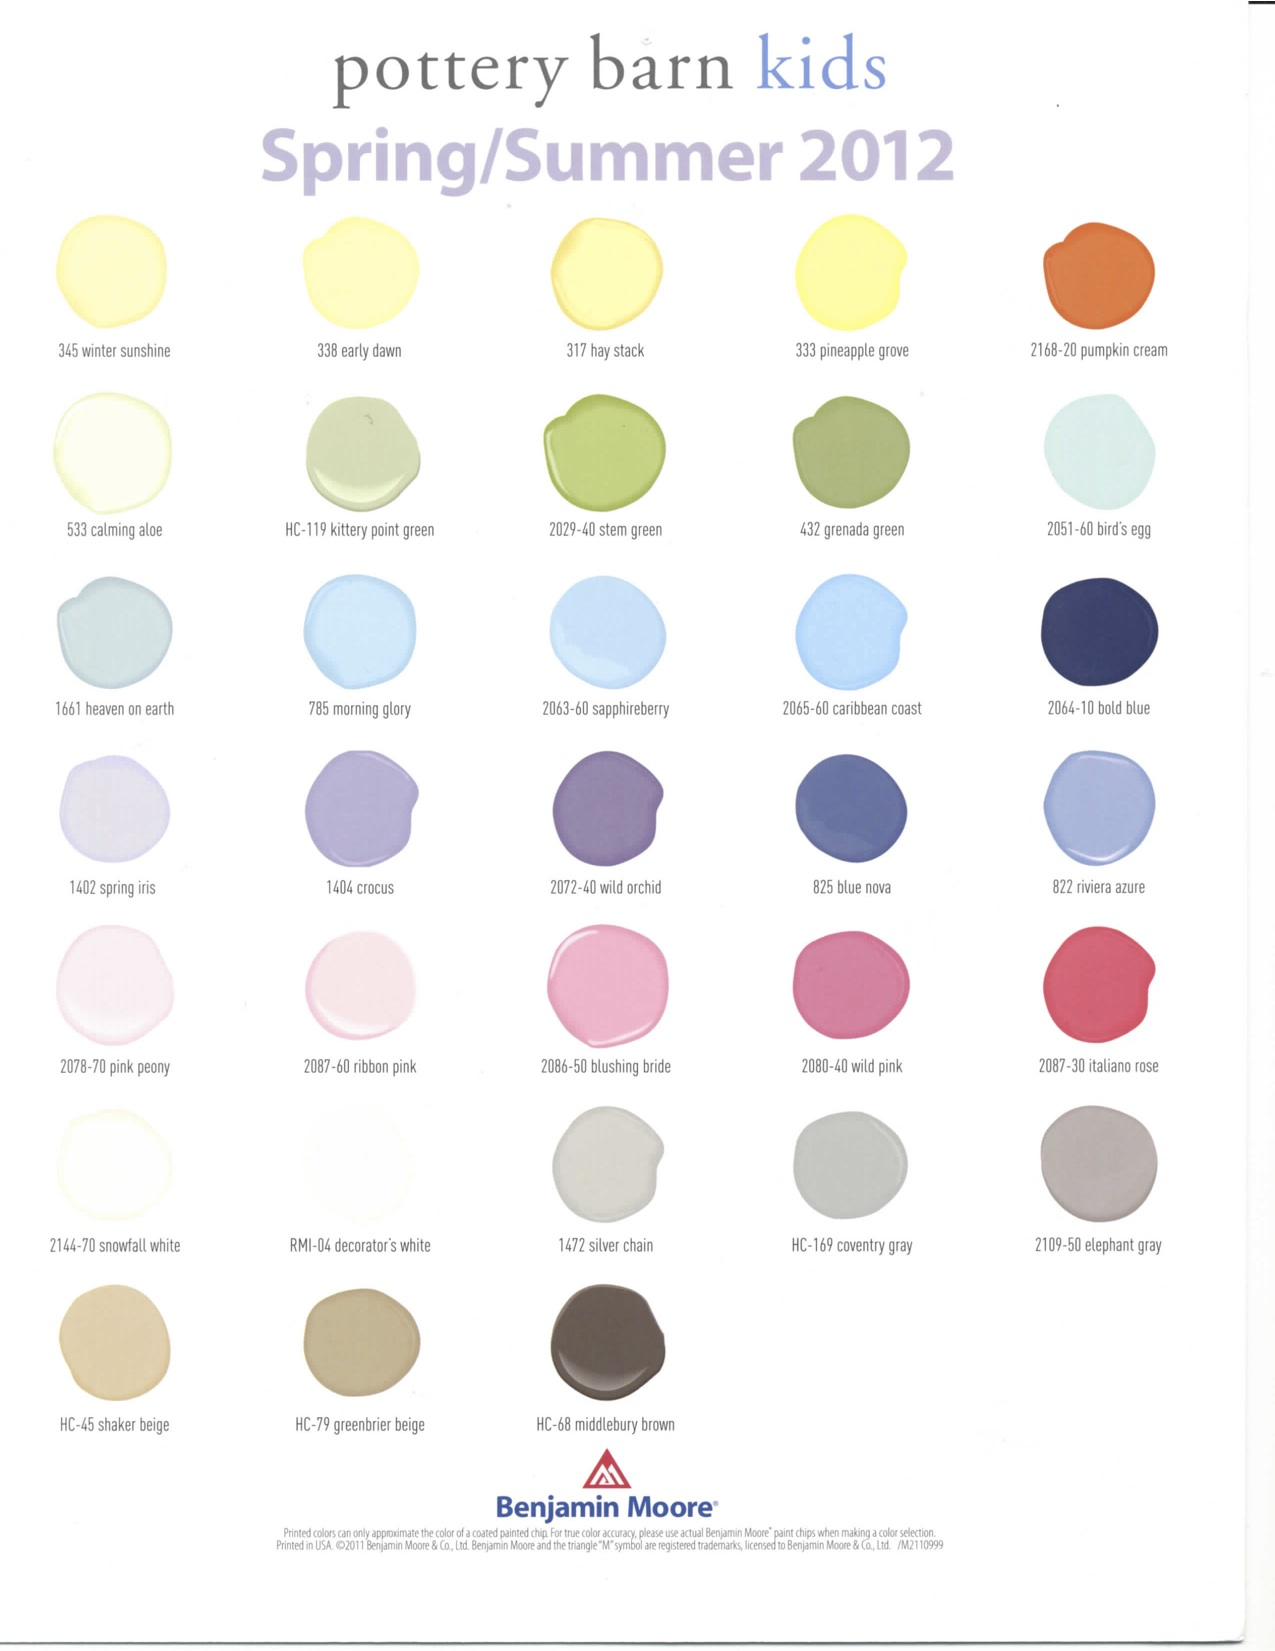 Pottery barn paint colors 2013 - Fabulous Pottery Barn Color Club With Potterybarn Paint